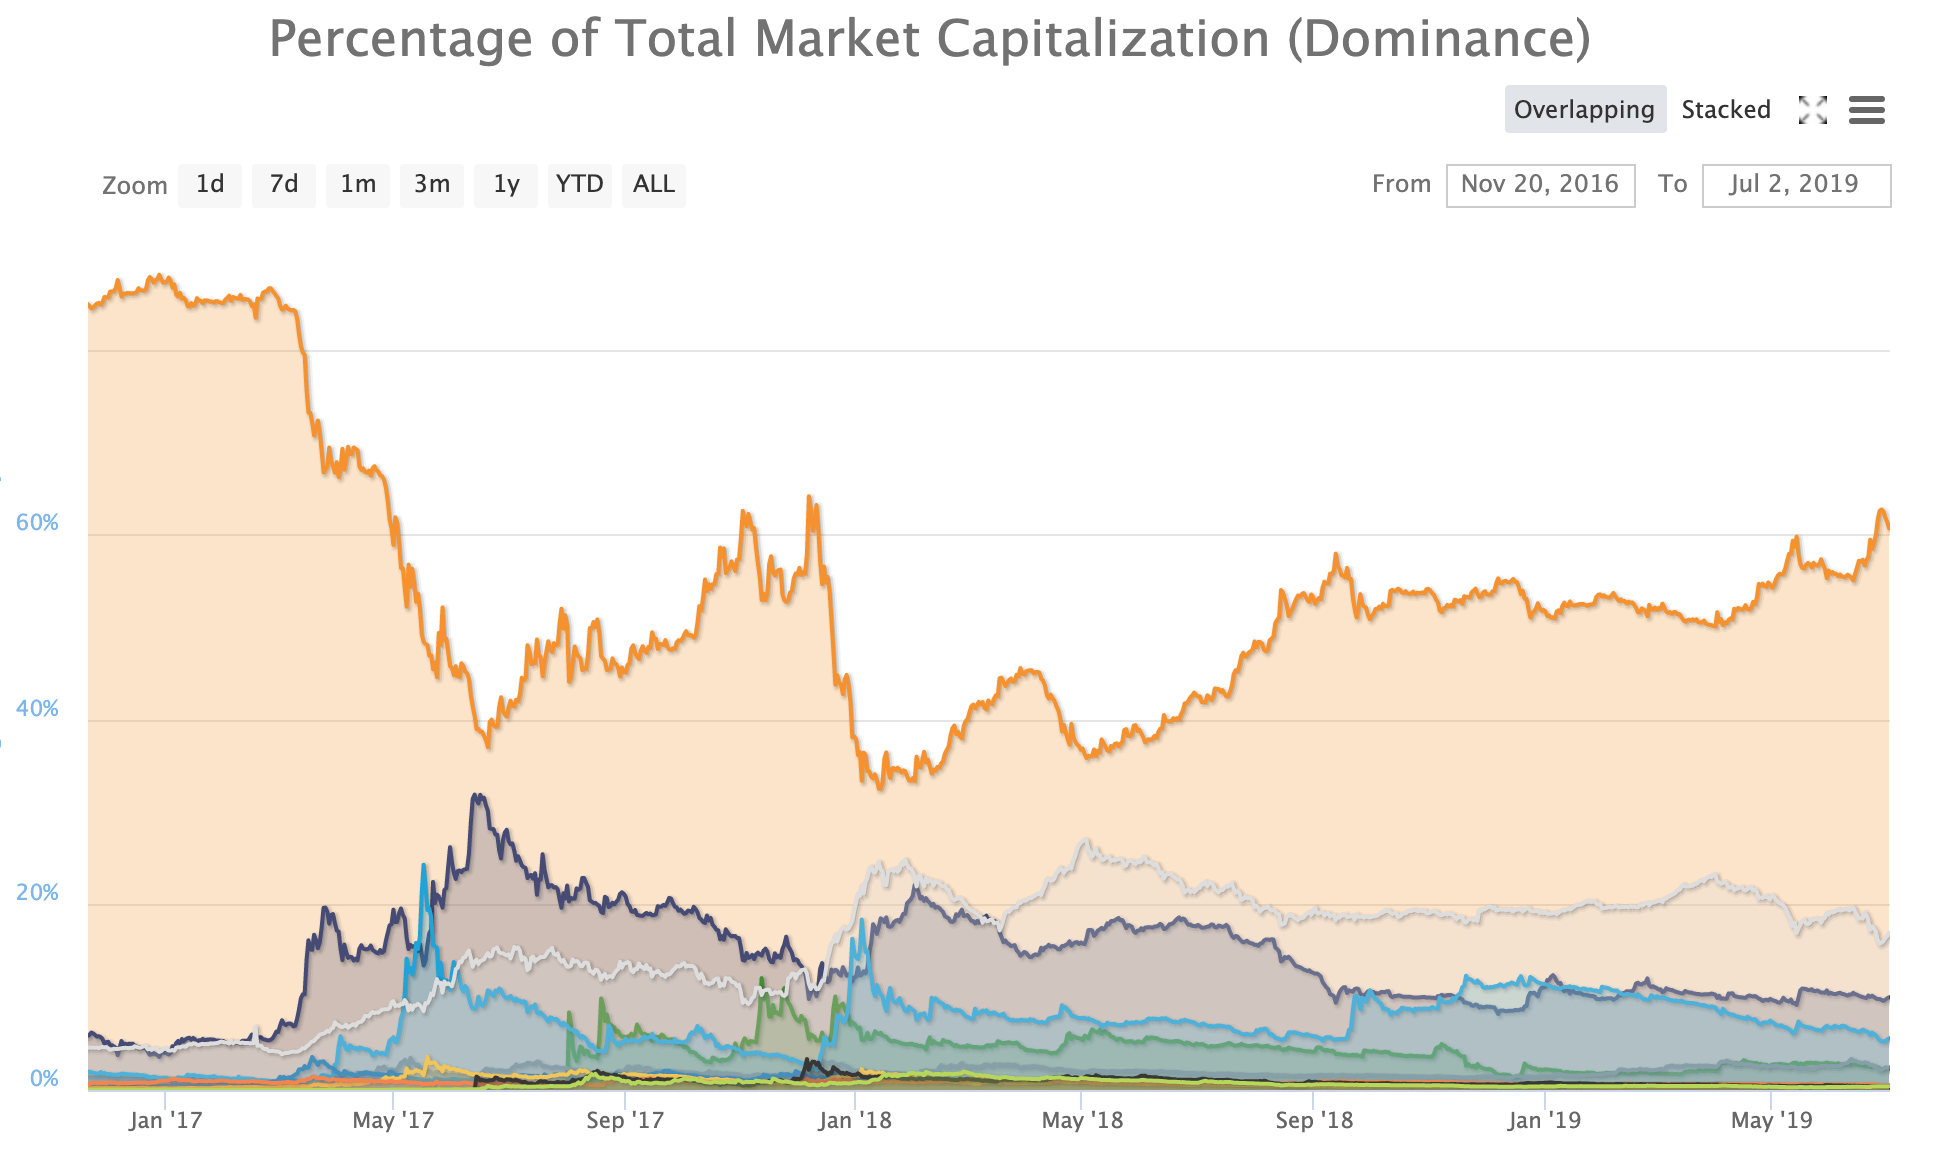 Bitcoin dominance over time